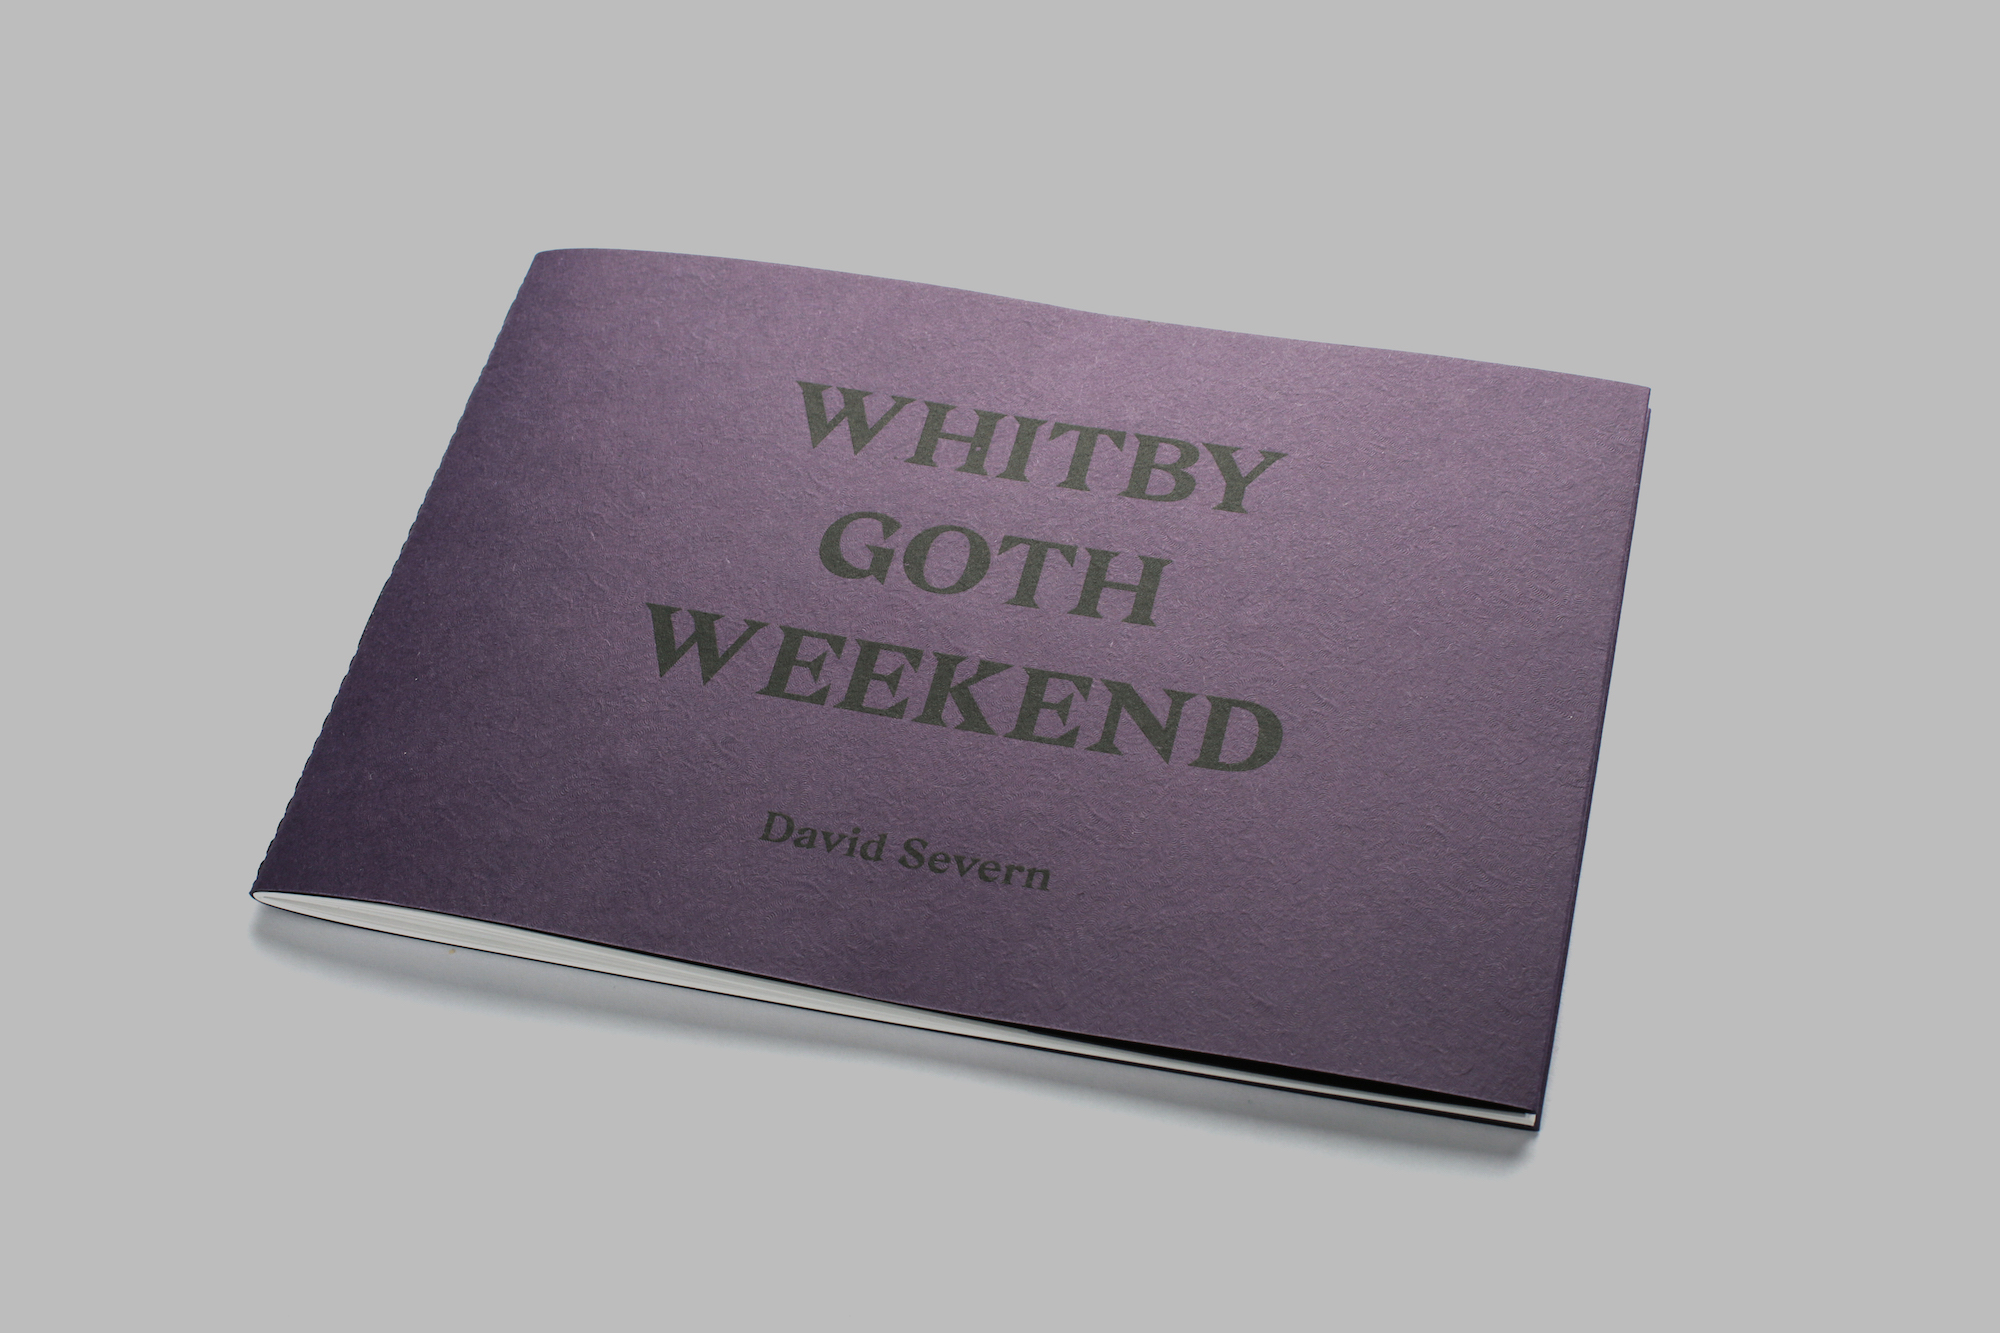 Whitby Goth Weekend photobook front cover.